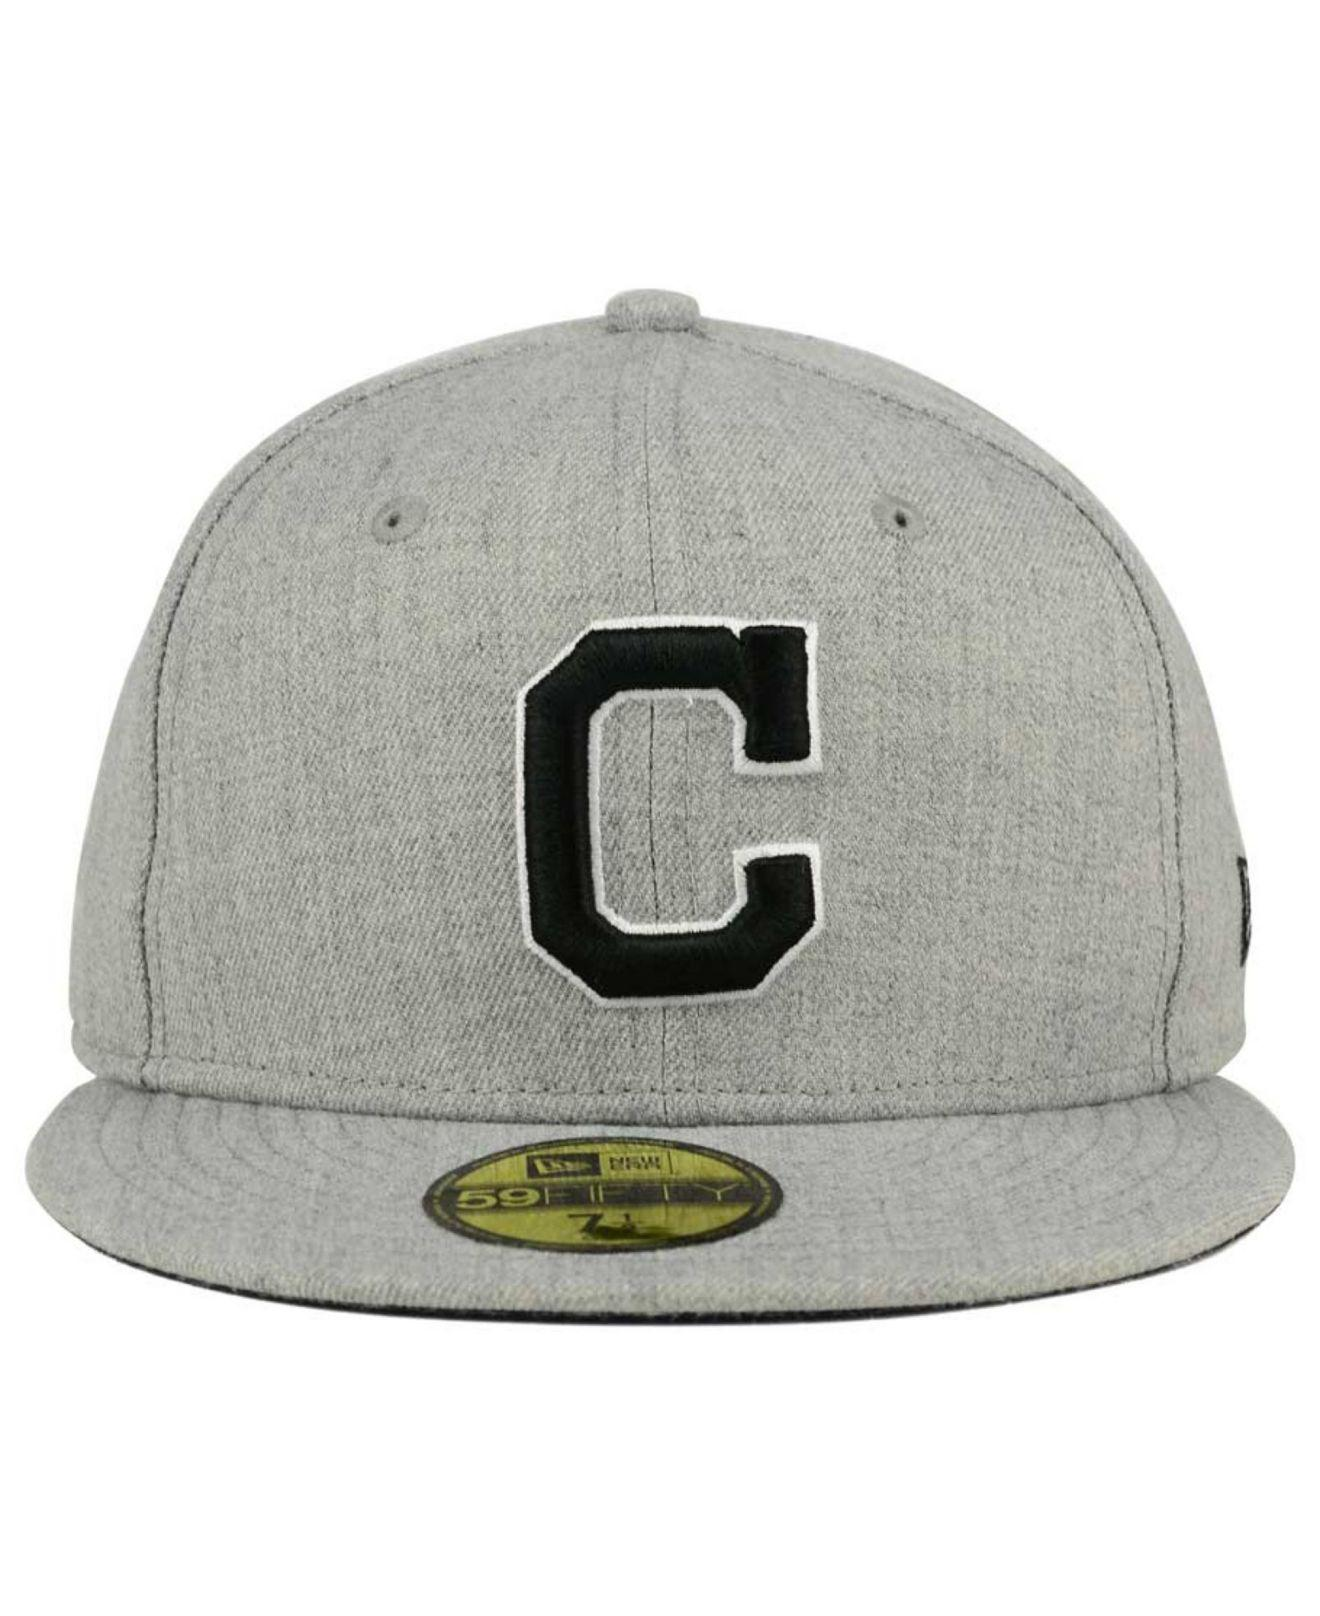 3562674c1f7 store new era boys cleveland indians batting practice prolight 59fifty  fitted cap 09144 8b142  order lyst ktz cleveland indians heather black  white 59fifty ...